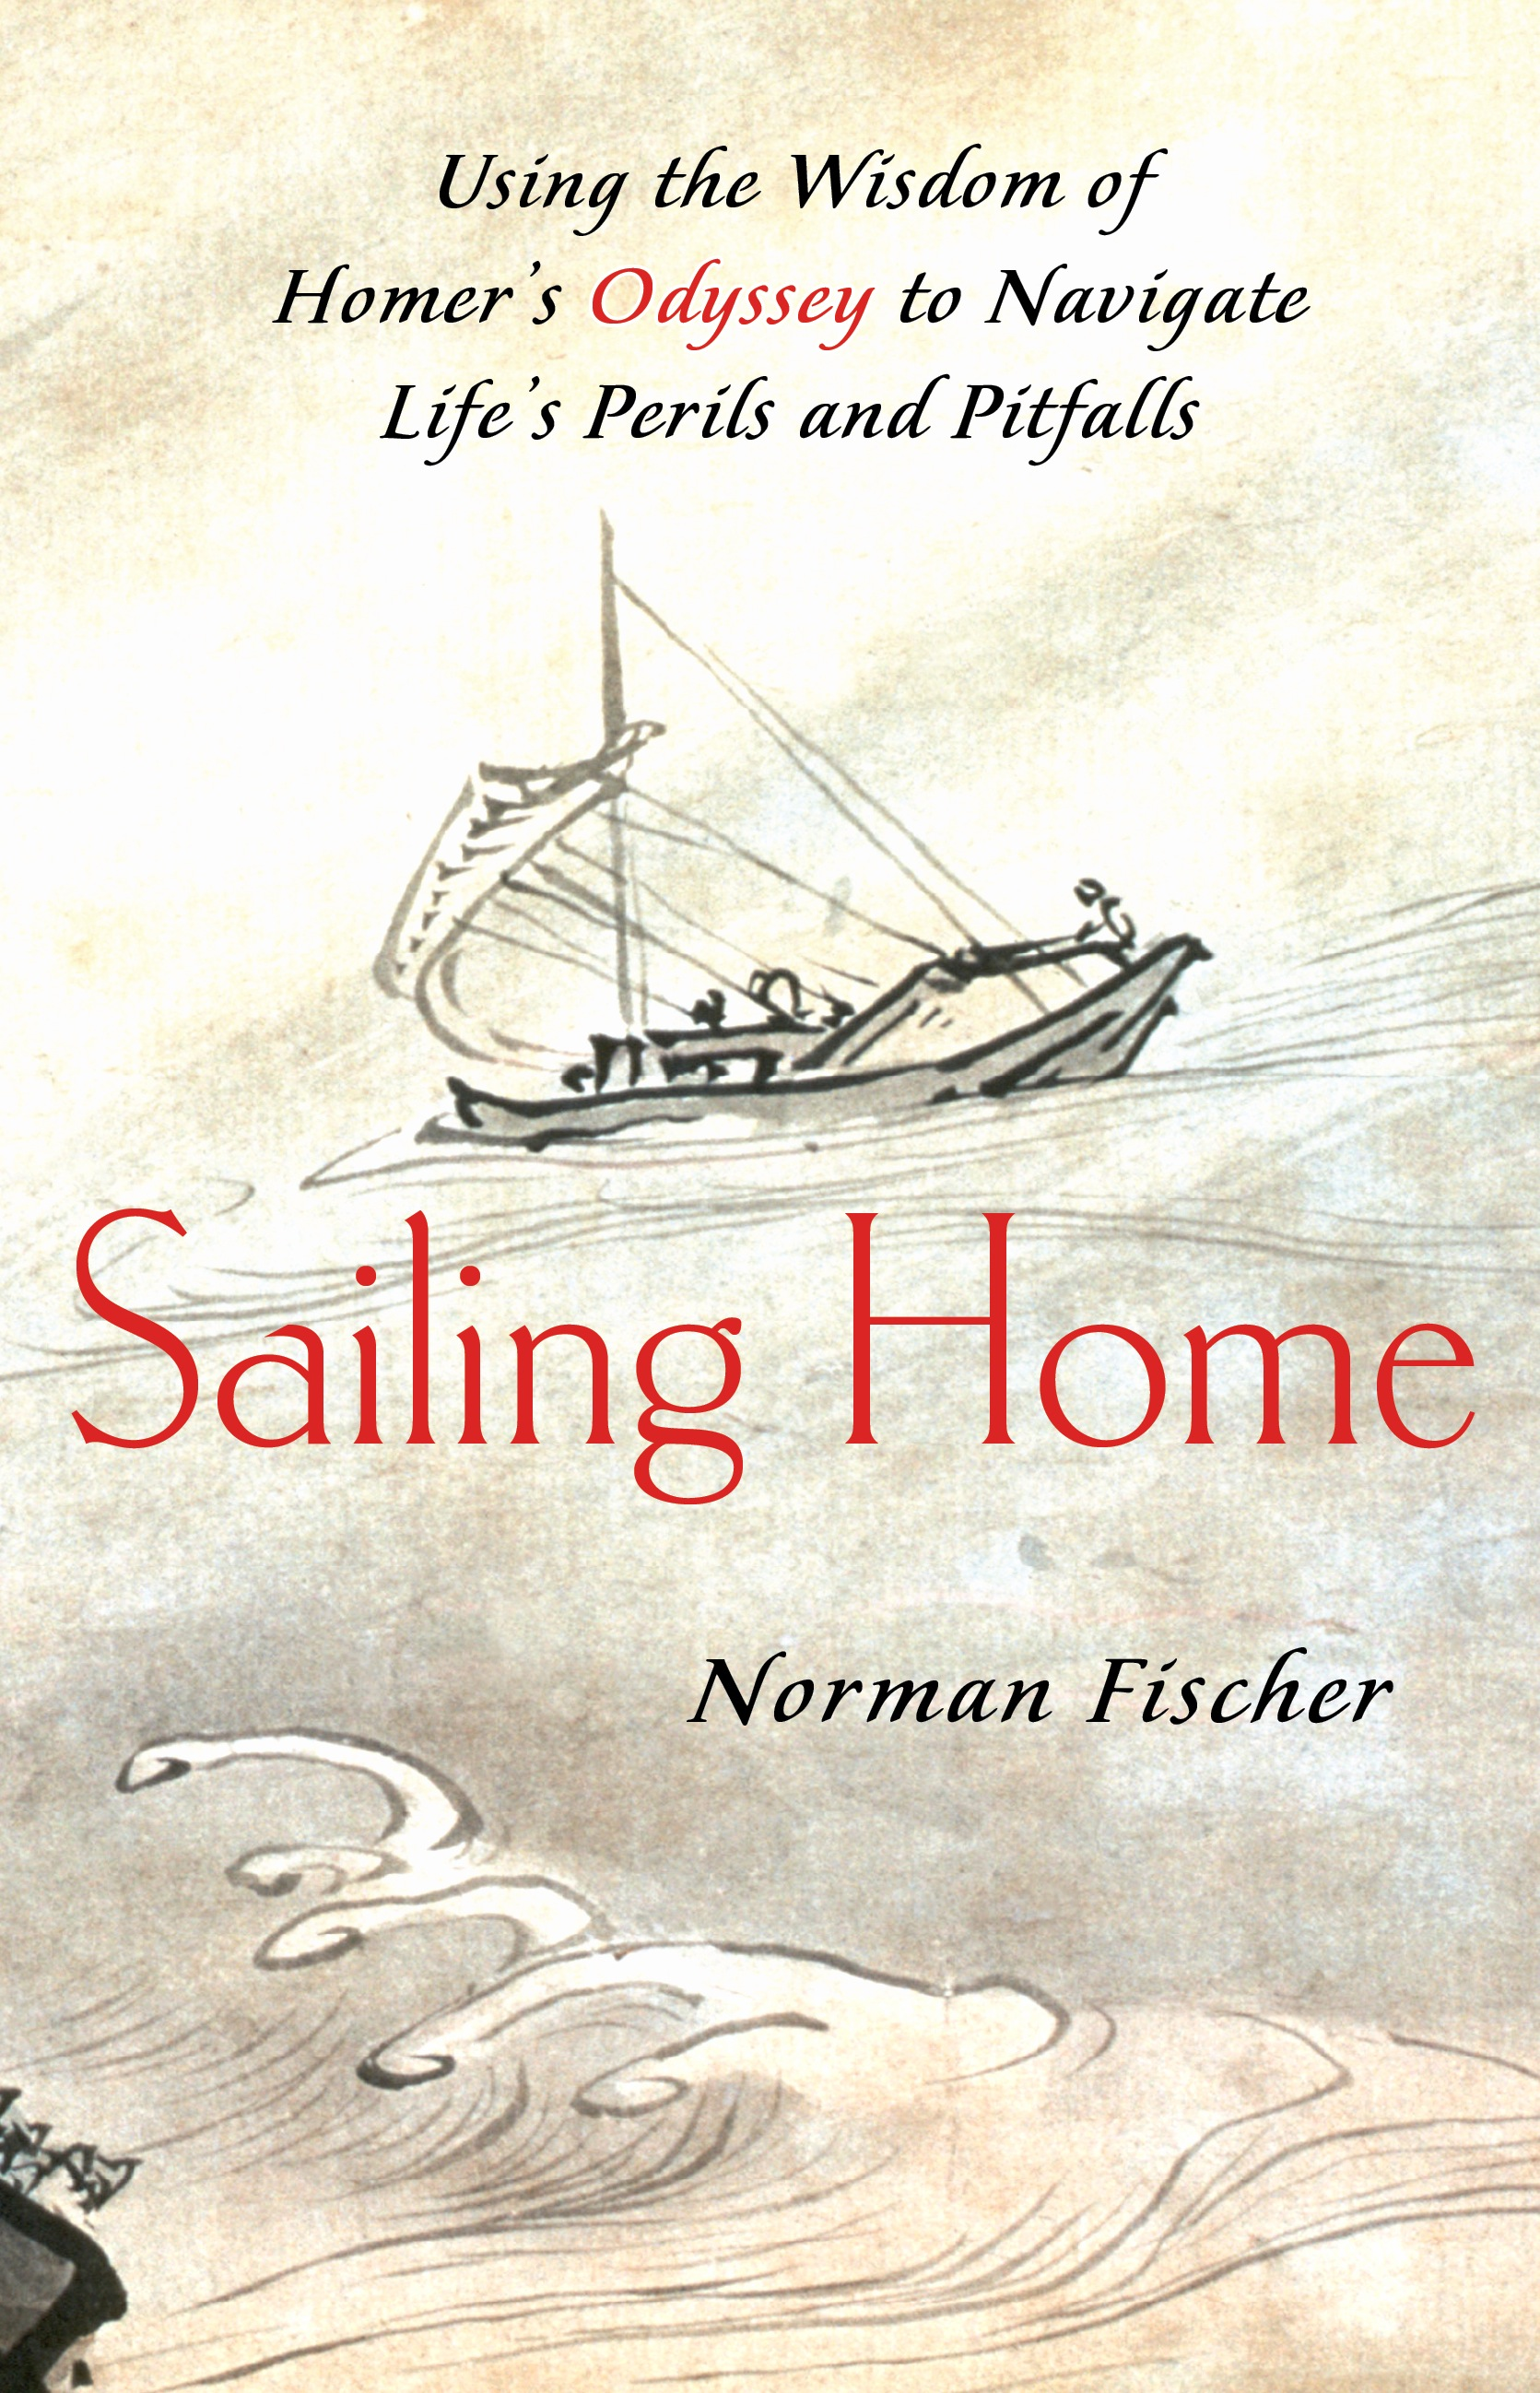 Sailing home ebook by norman fischer official publisher page cvr9781416560395 9781416560395 hr fandeluxe Ebook collections